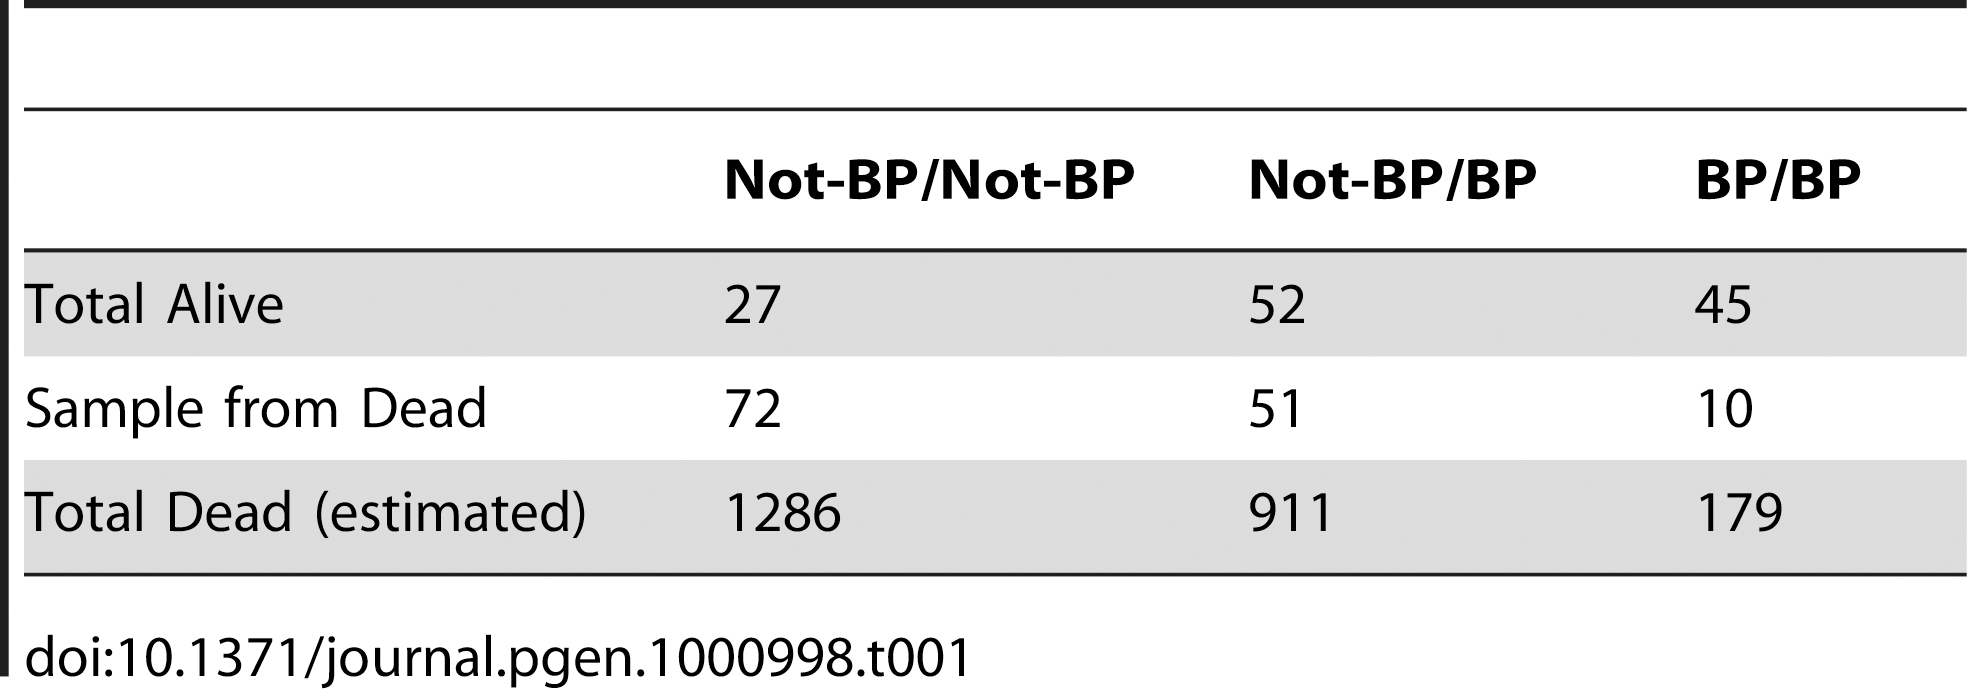 Survivorship/mortality of <i>Cyp6g1-BP</i> genotypes on 120 µg of DDT.